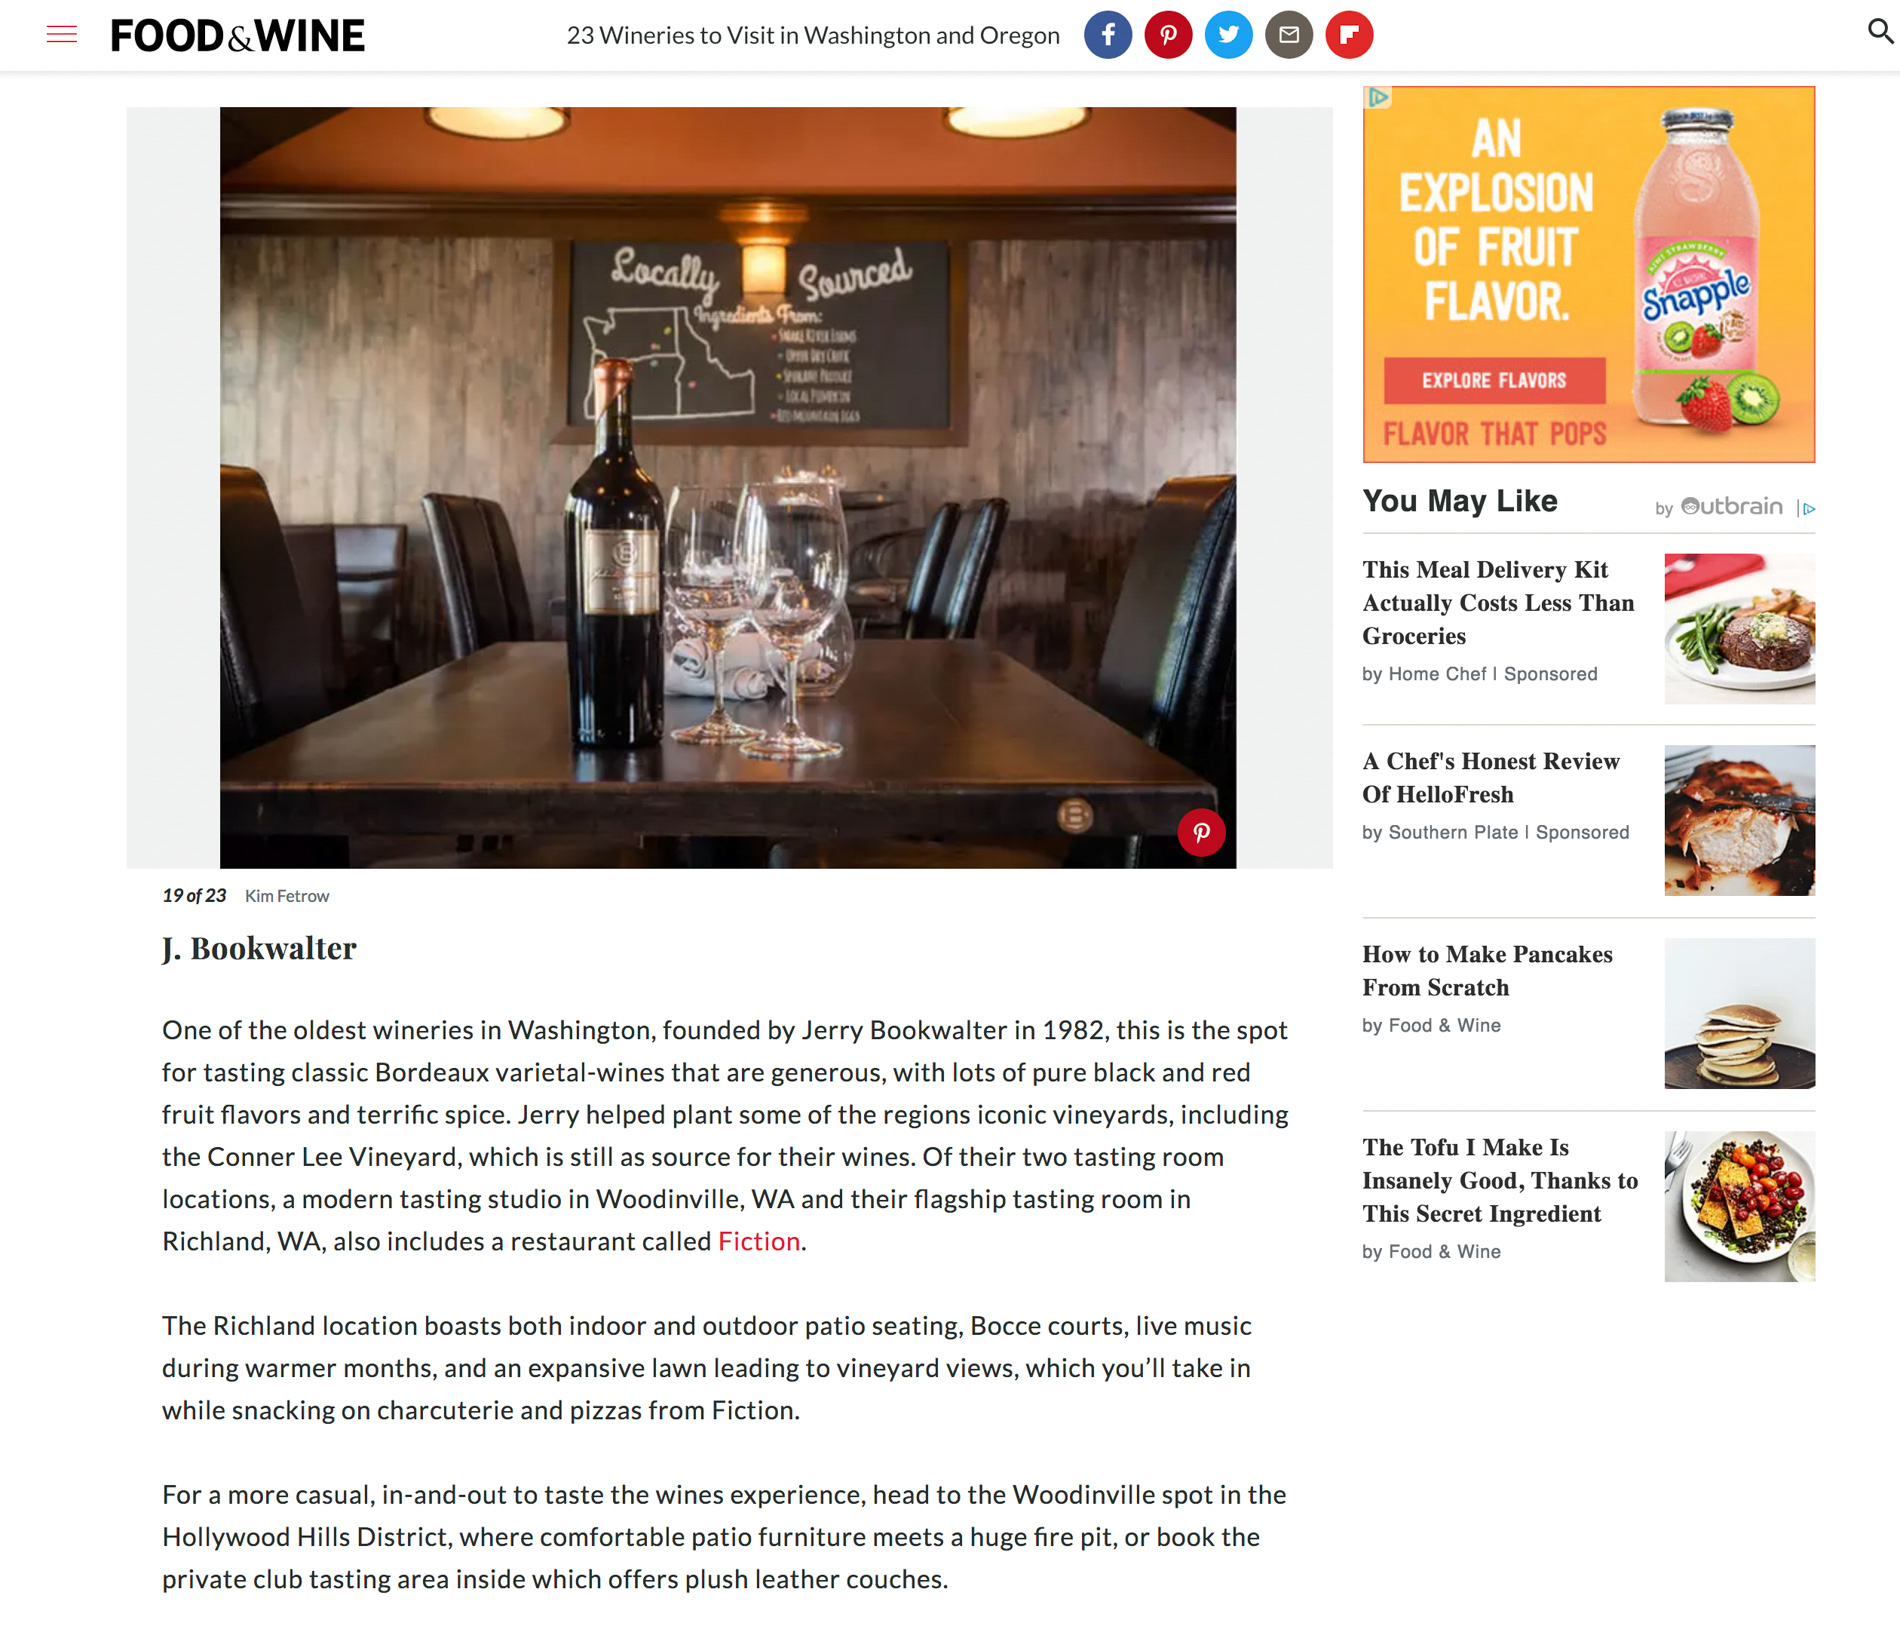 Food & Wine Feature